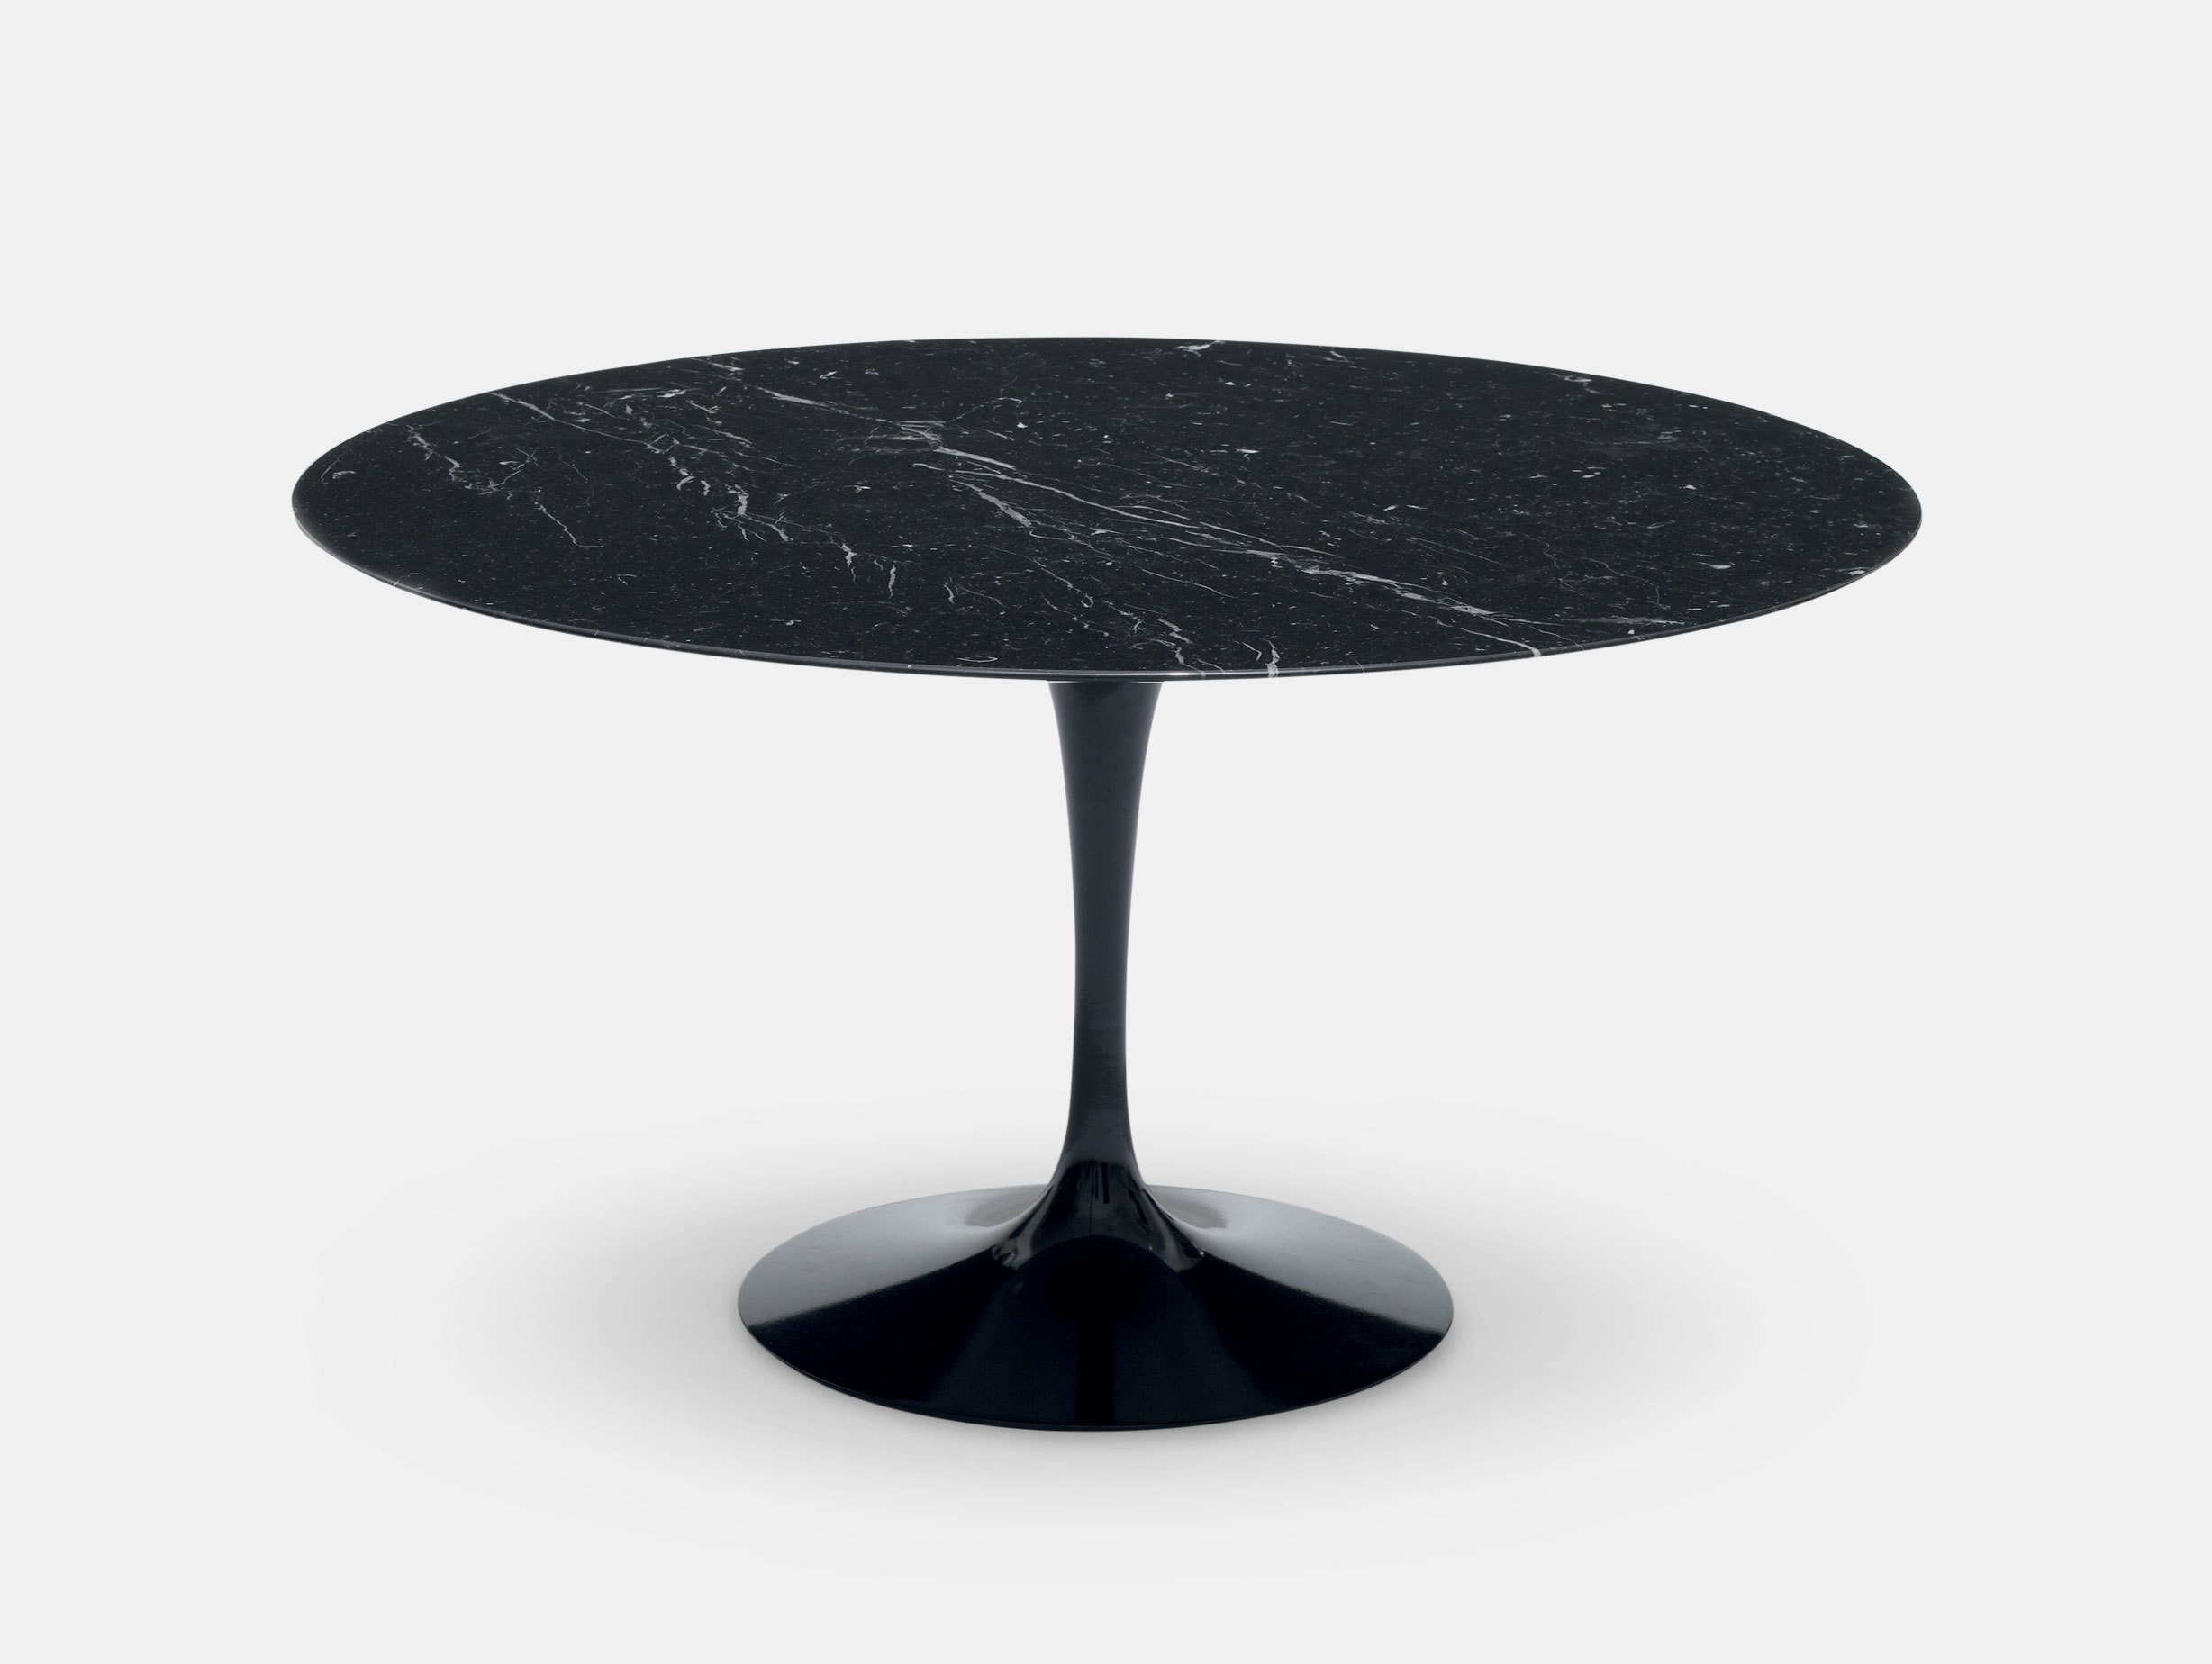 Saarinen Round Dining Table image 2